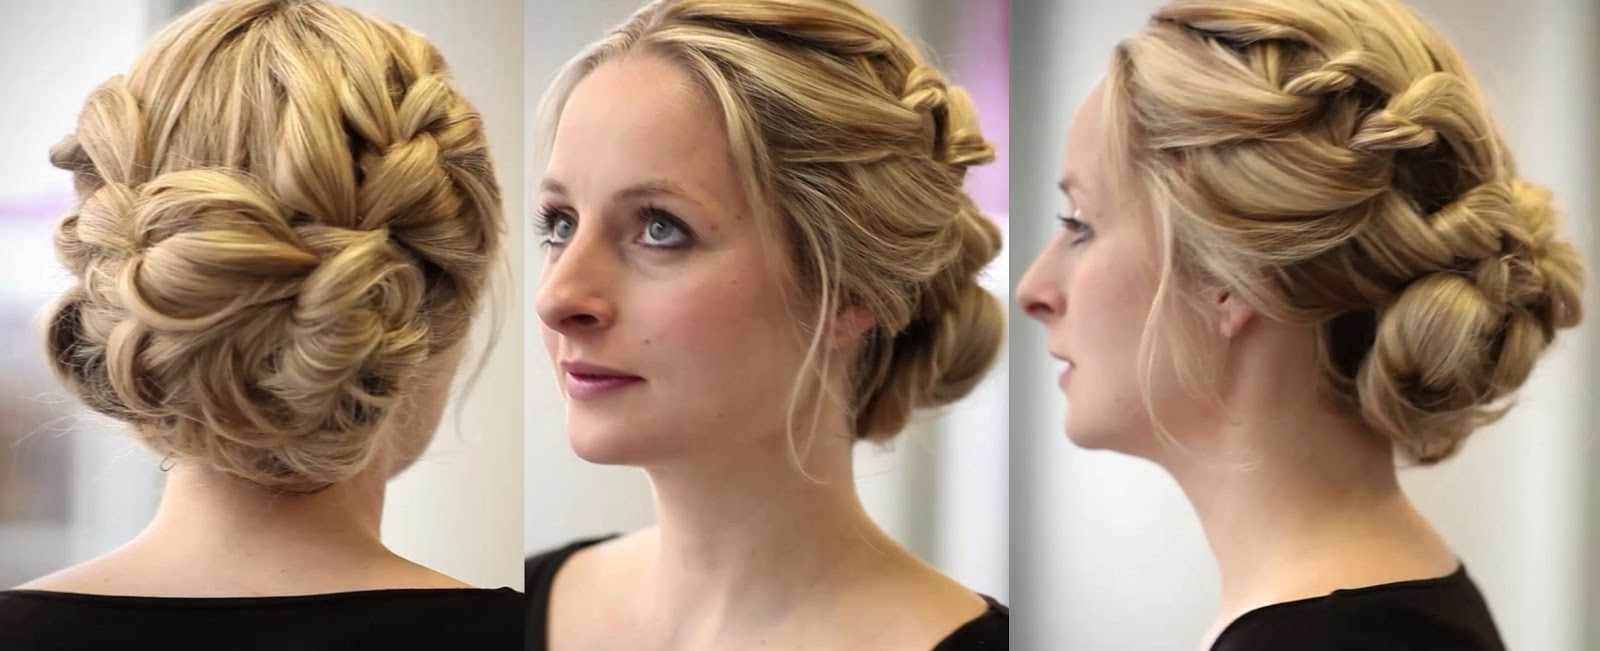 Trend Hairstyle And Haircut Ideas (View 11 of 15)